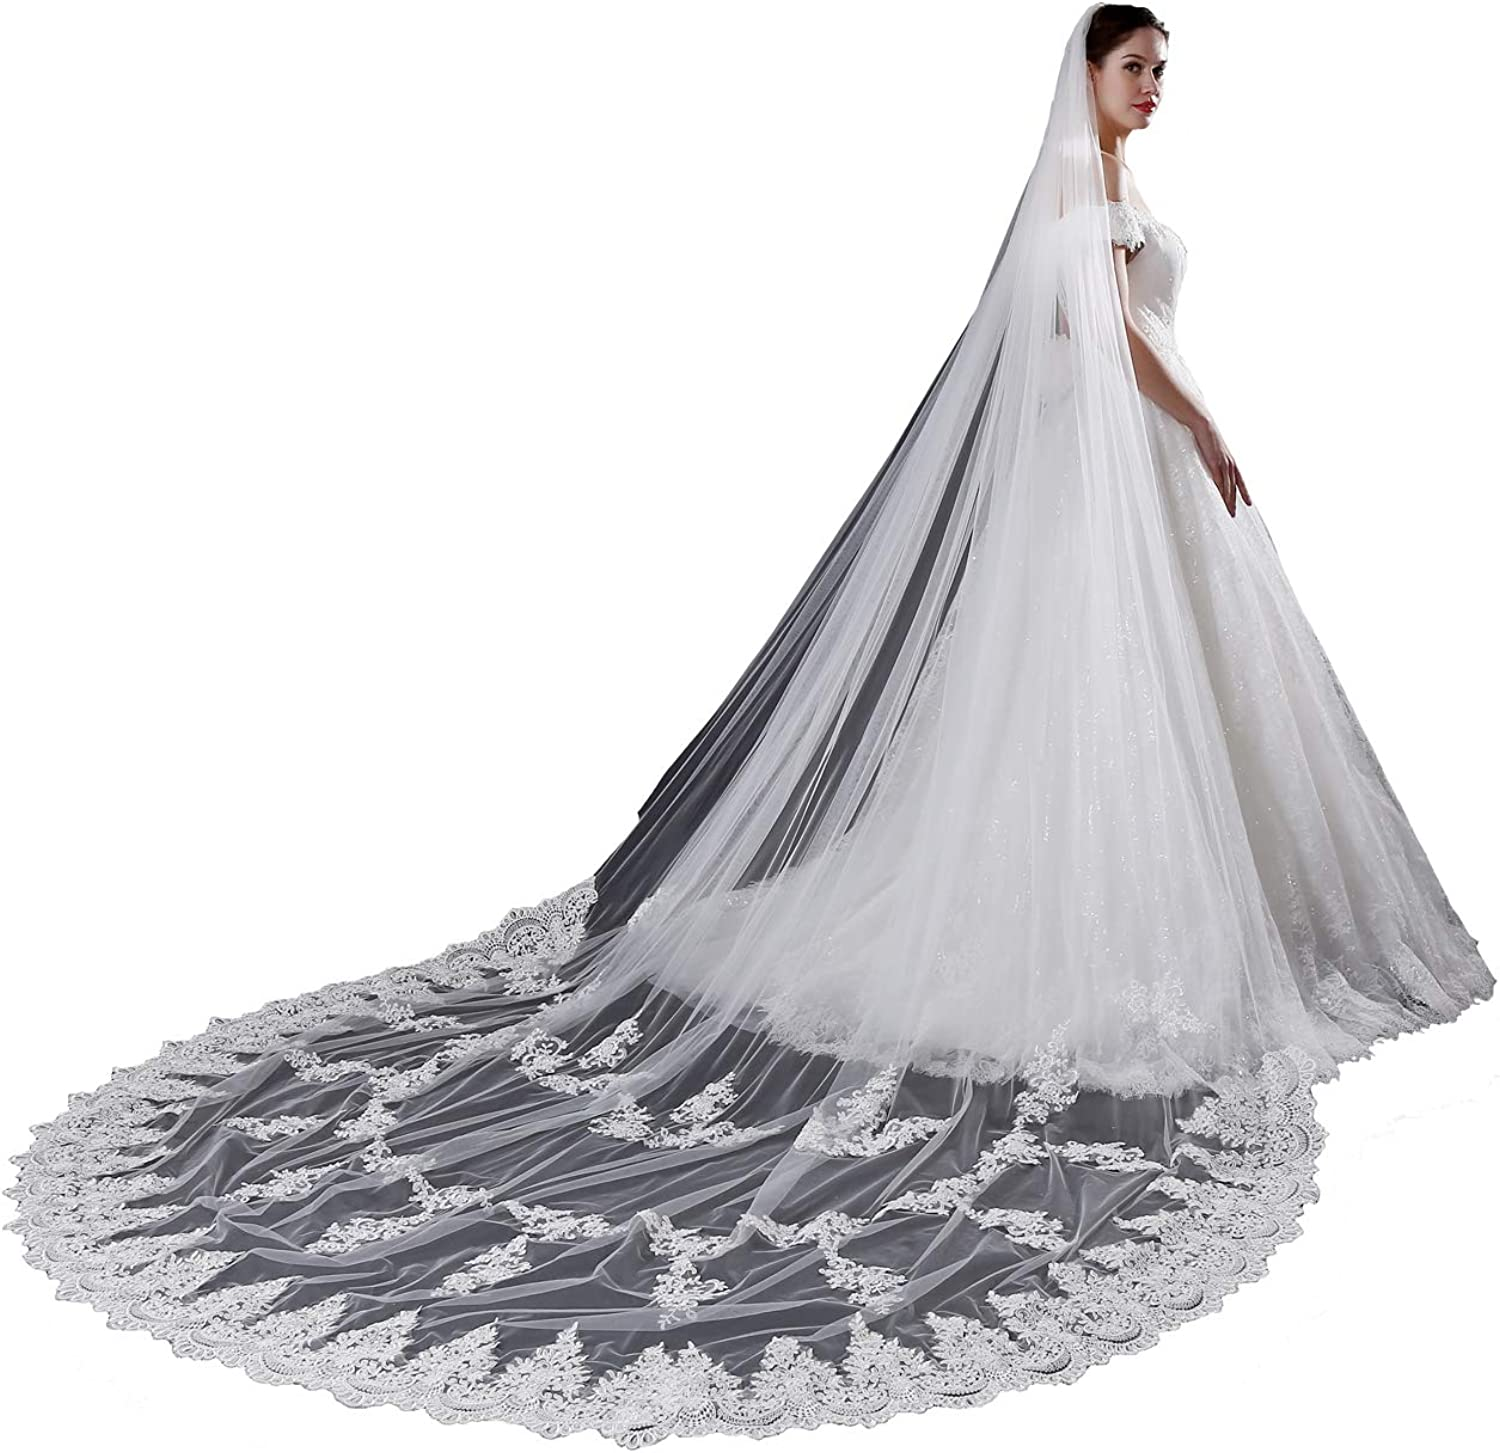 Fenghauvip Cathedral Wedding Veil Lace Floral 1 Tier Veils for Brides Appliques with Comb